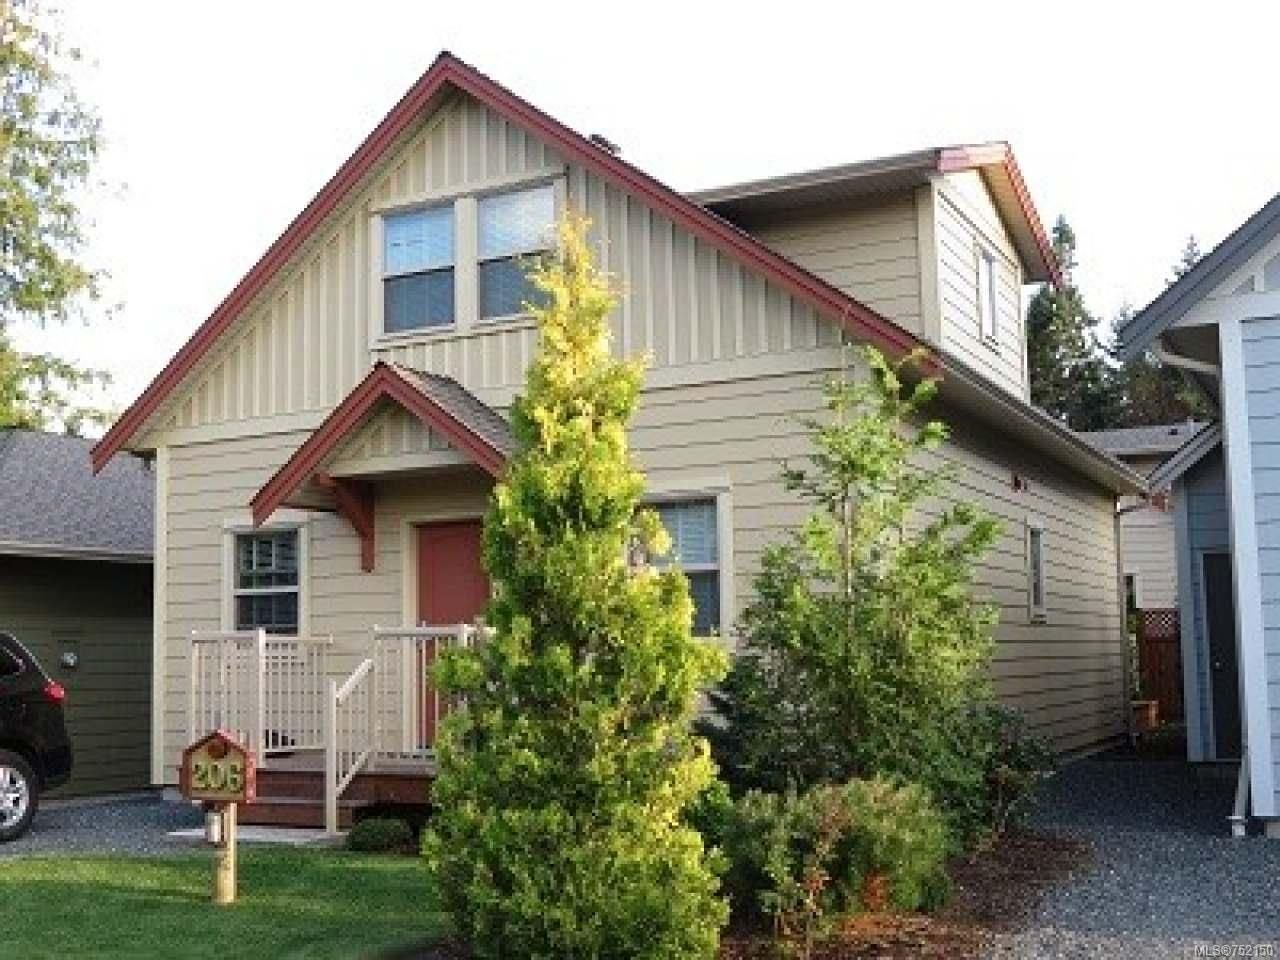 Main Photo: 206 1130 Resort Dr in PARKSVILLE: PQ Parksville Row/Townhouse for sale (Parksville/Qualicum)  : MLS®# 752150